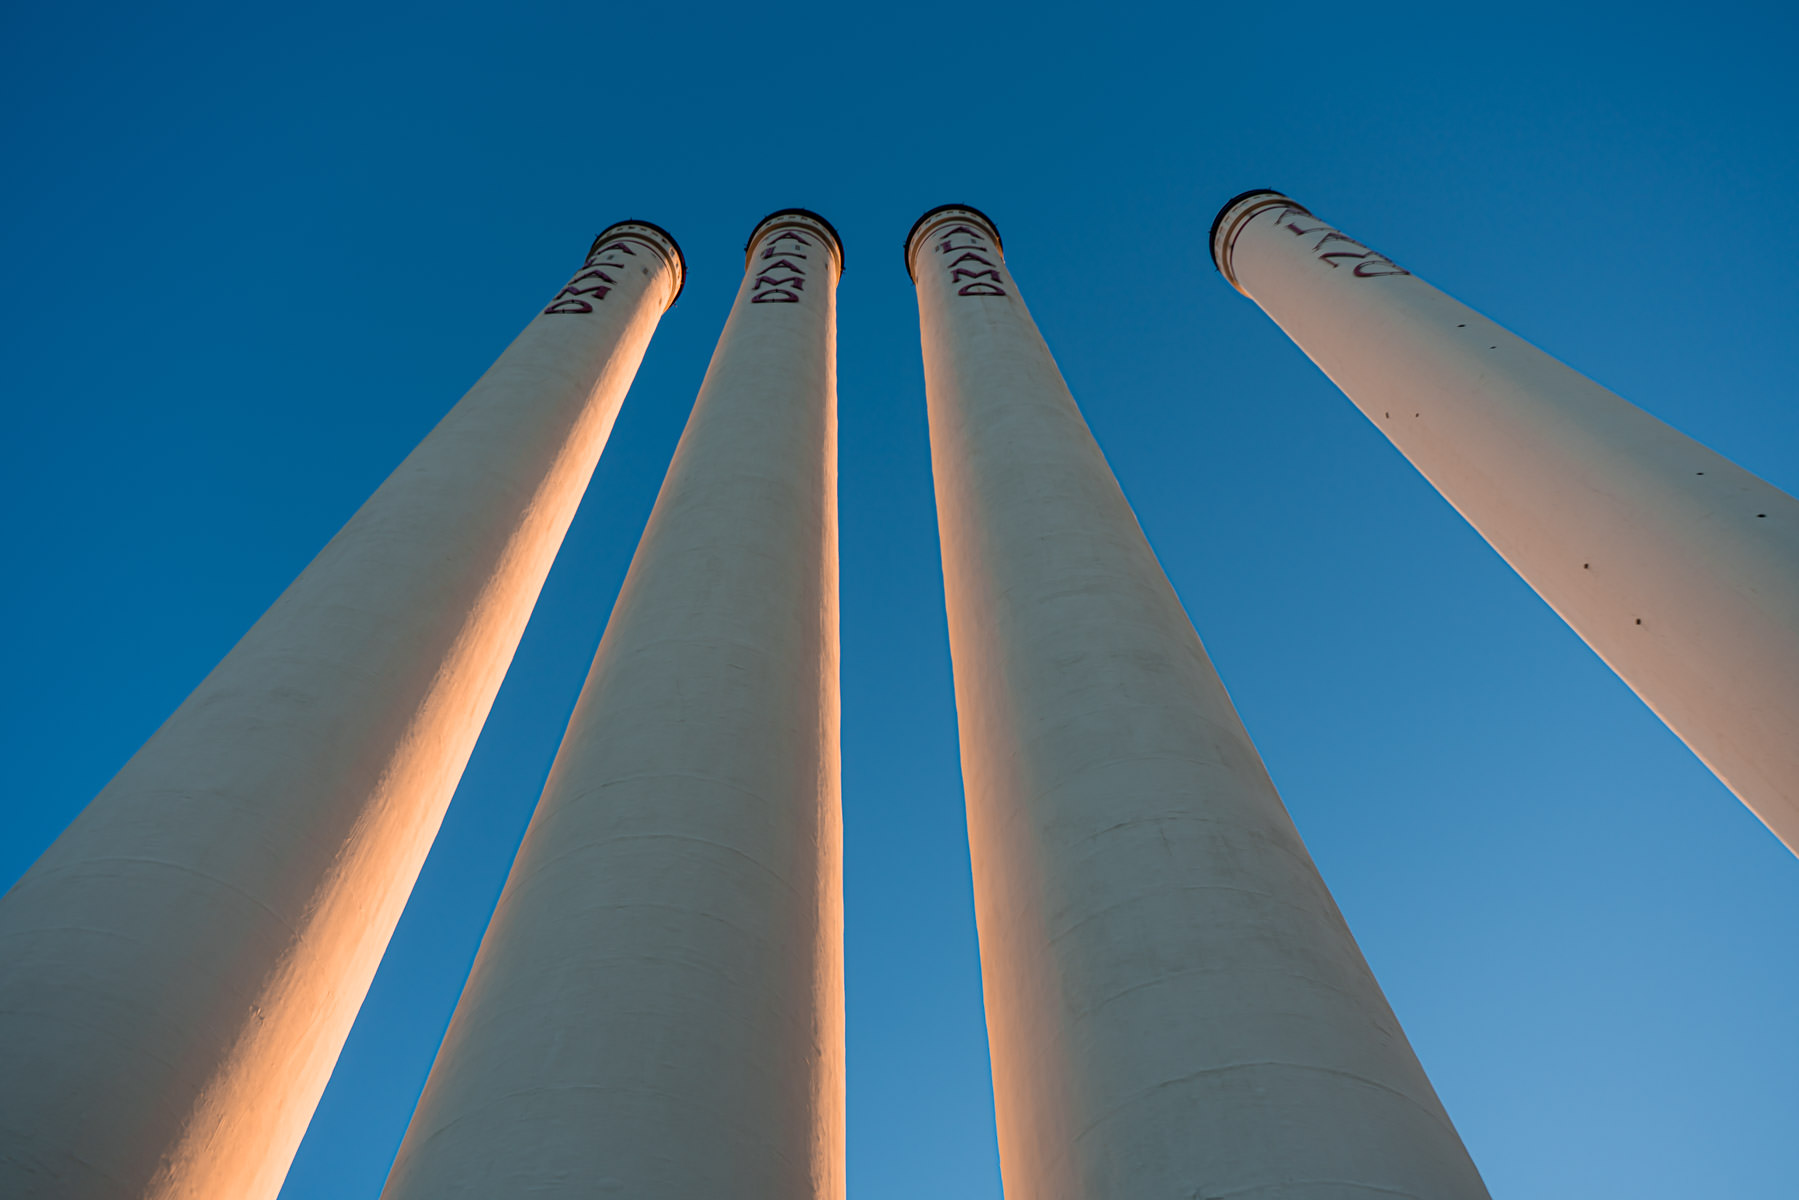 The four 204-foot-tall smokestacks at the Alamo Quarry Market, a former cement factory-turned-shopping center, reach into the clear blue sky over San Antonio, Texas.